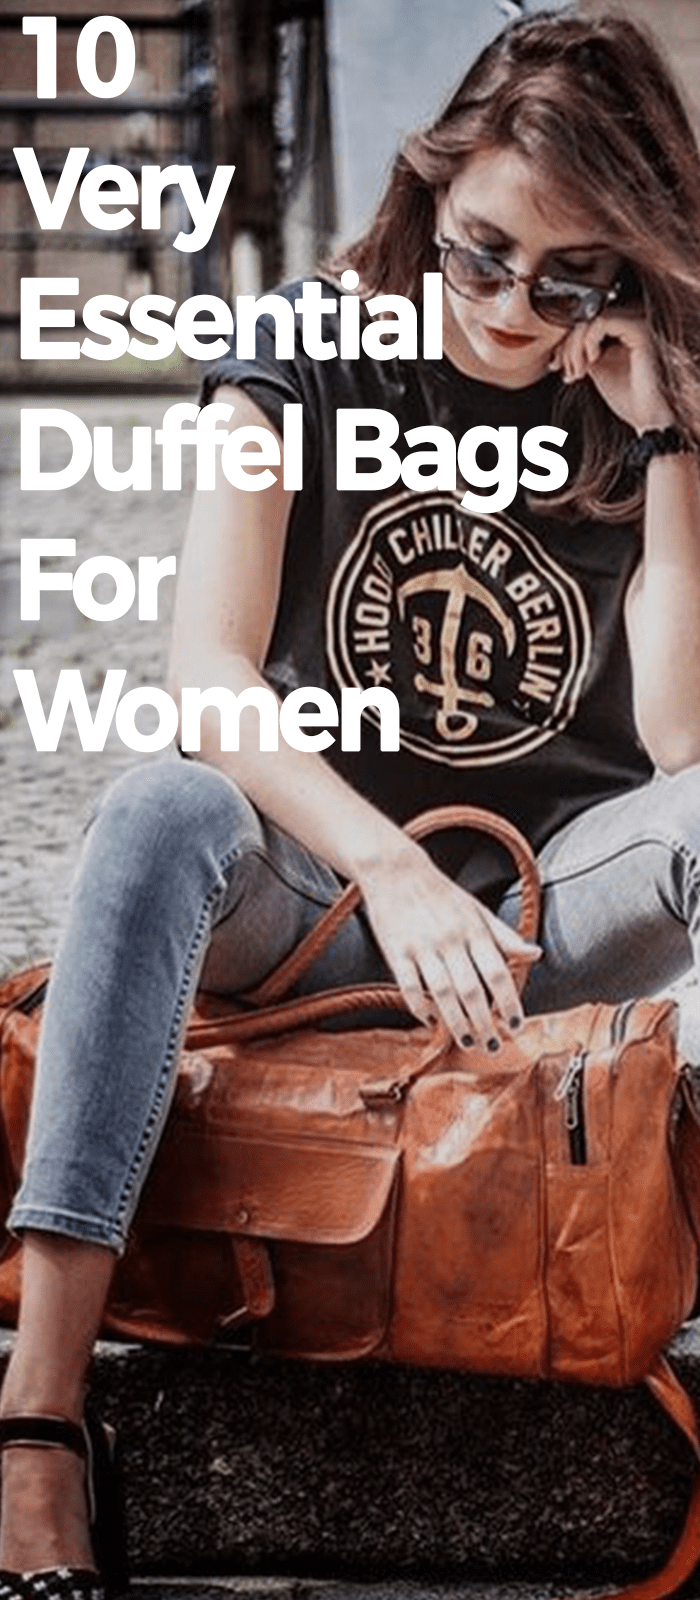 10 Very Essential Duffel Bags For Women.